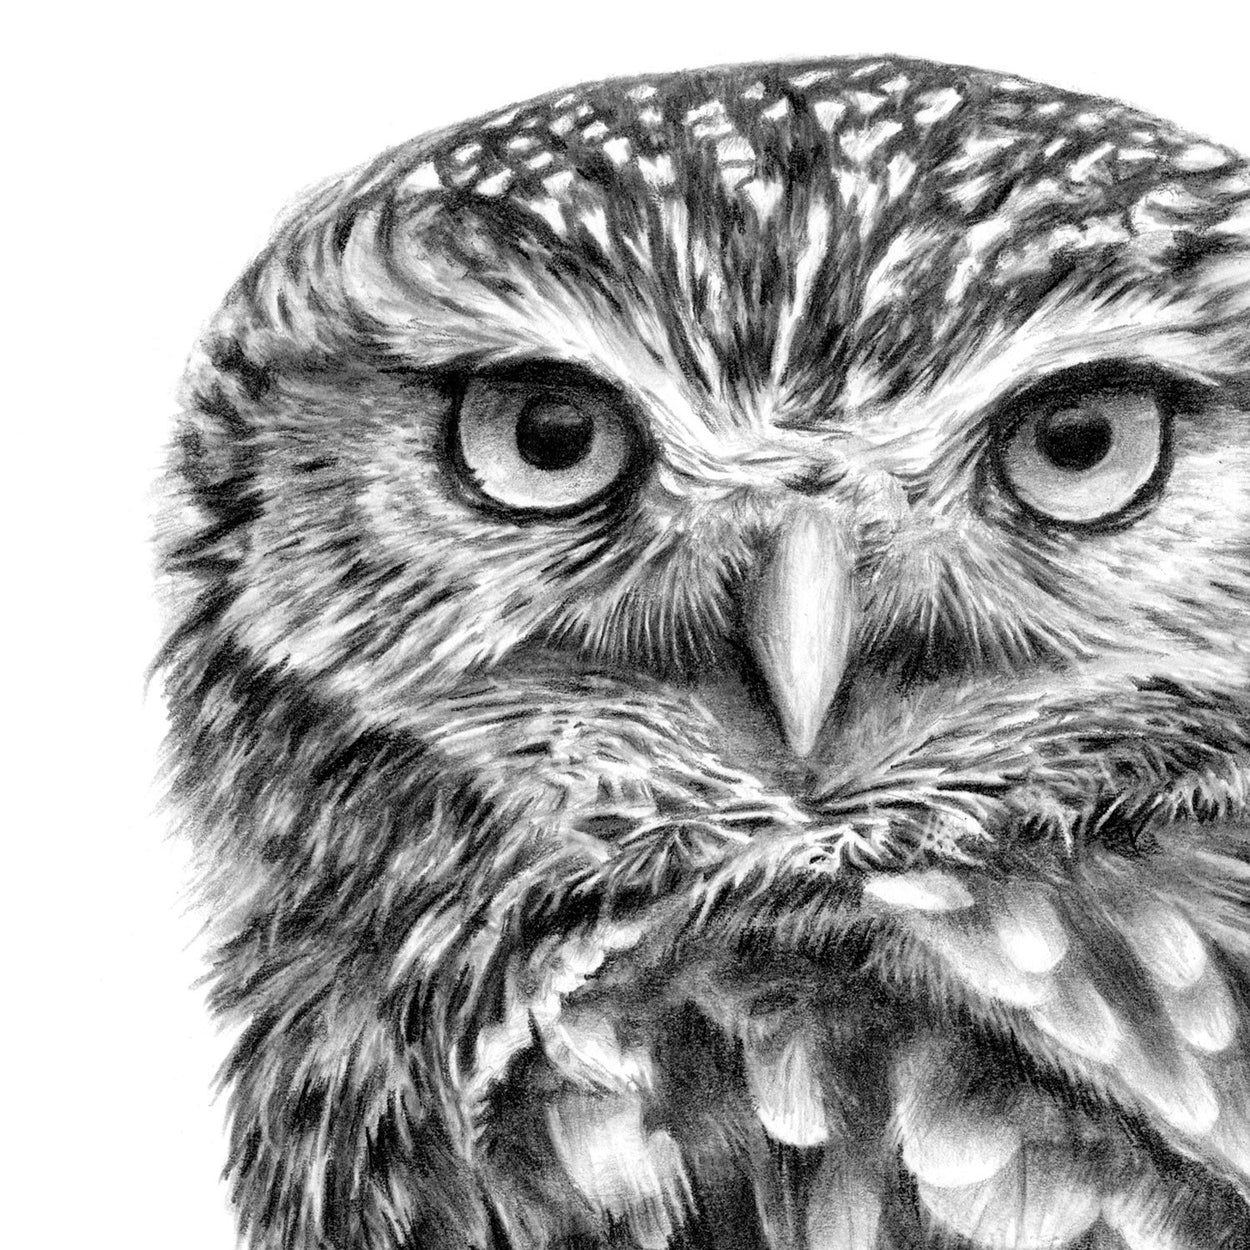 Little Owl Face Pencil Drawing Close-up - The Thriving Wild